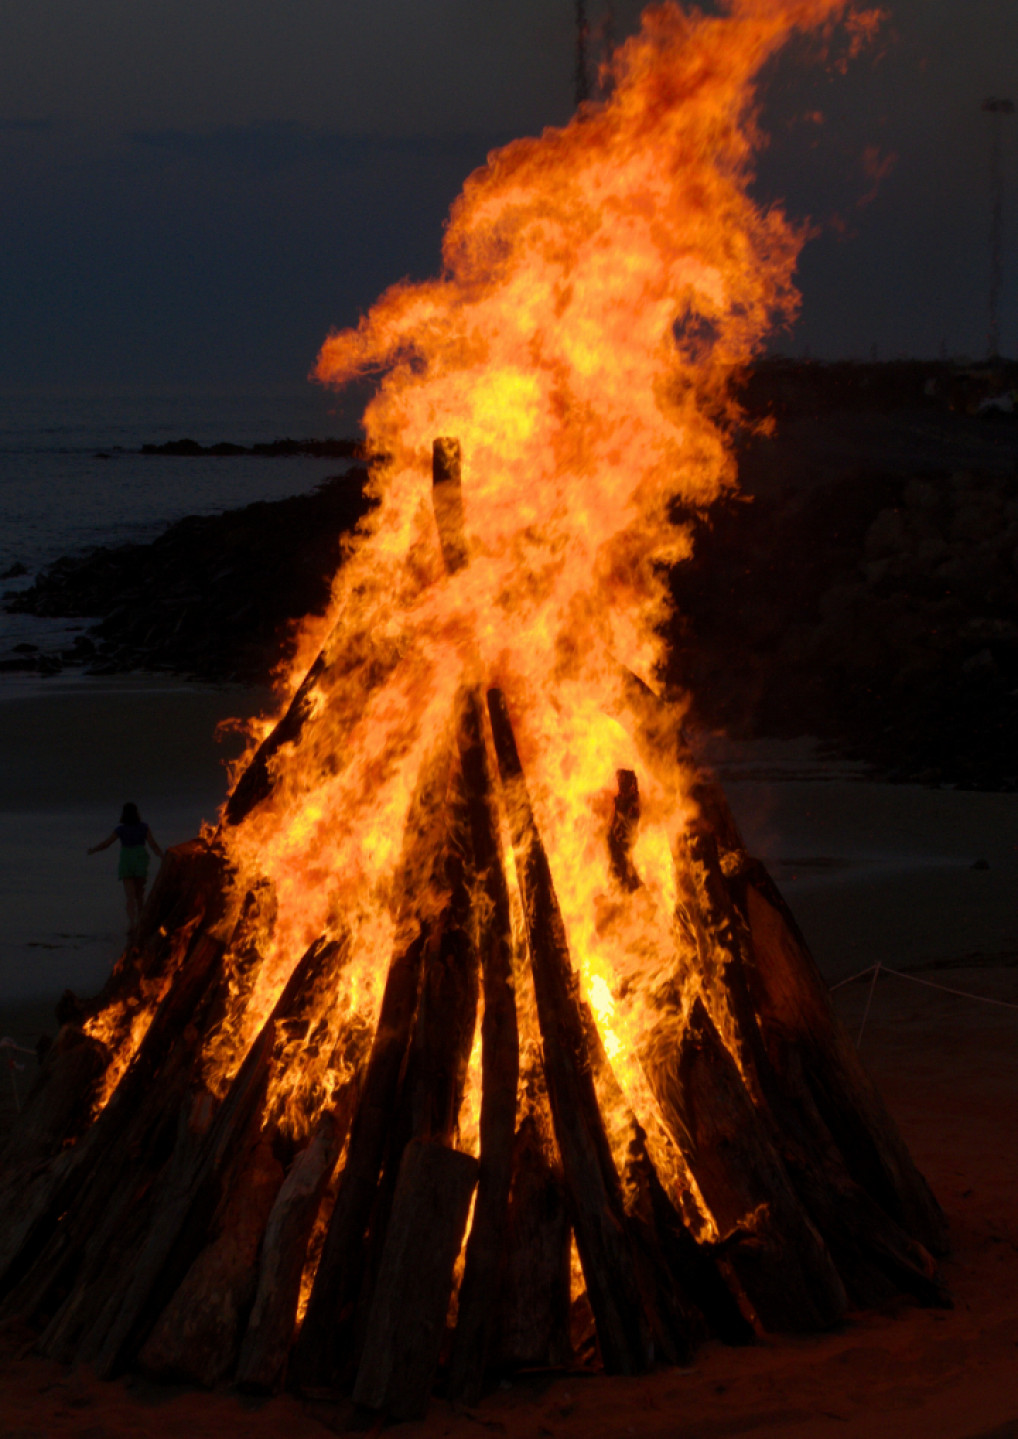 Bonfire Meditation~ Empowering and Life-Altering